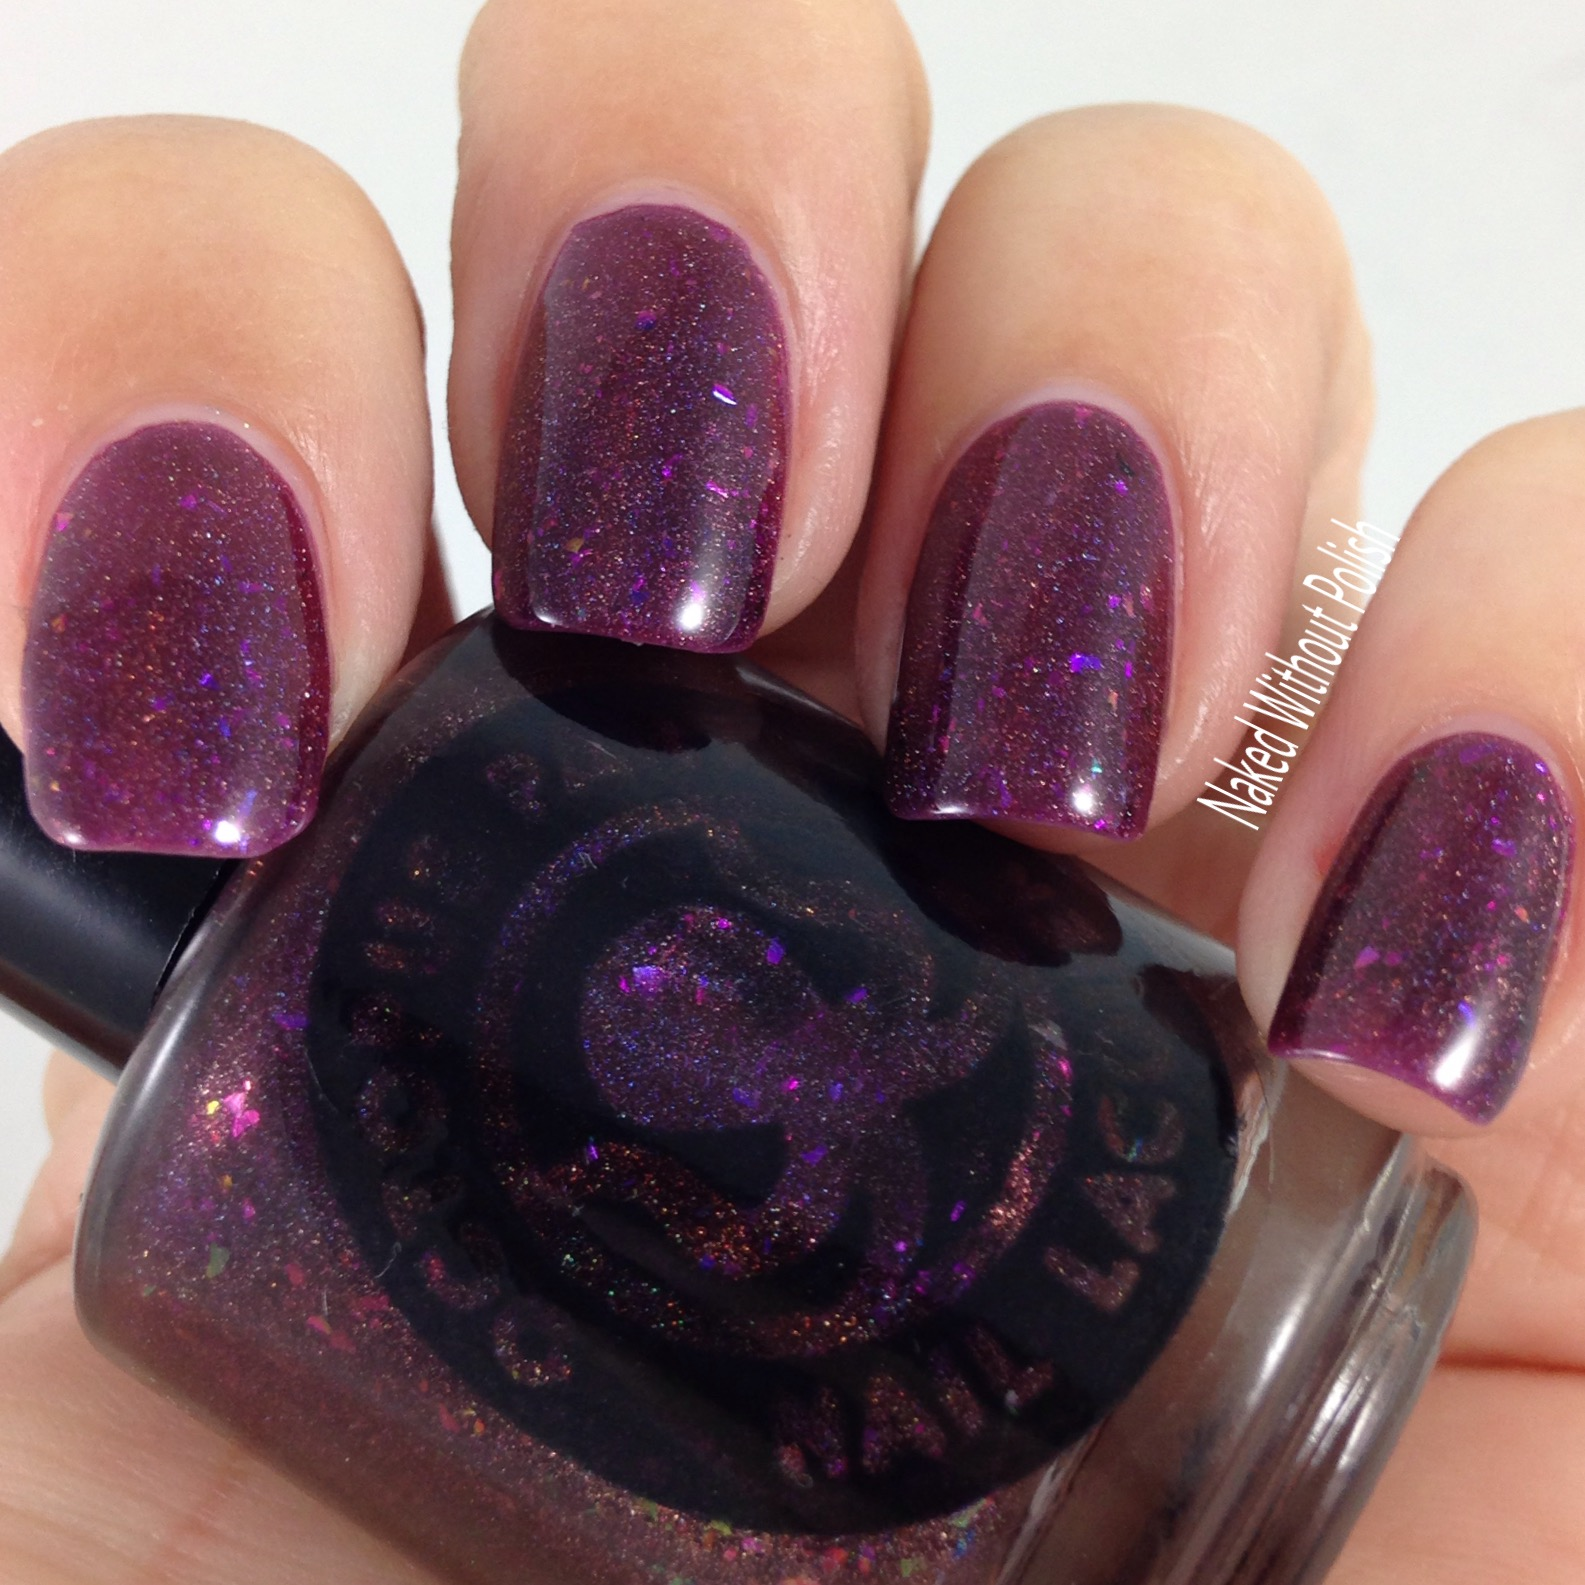 Octopus-Party-Nail-Lacquer-Grimes-6